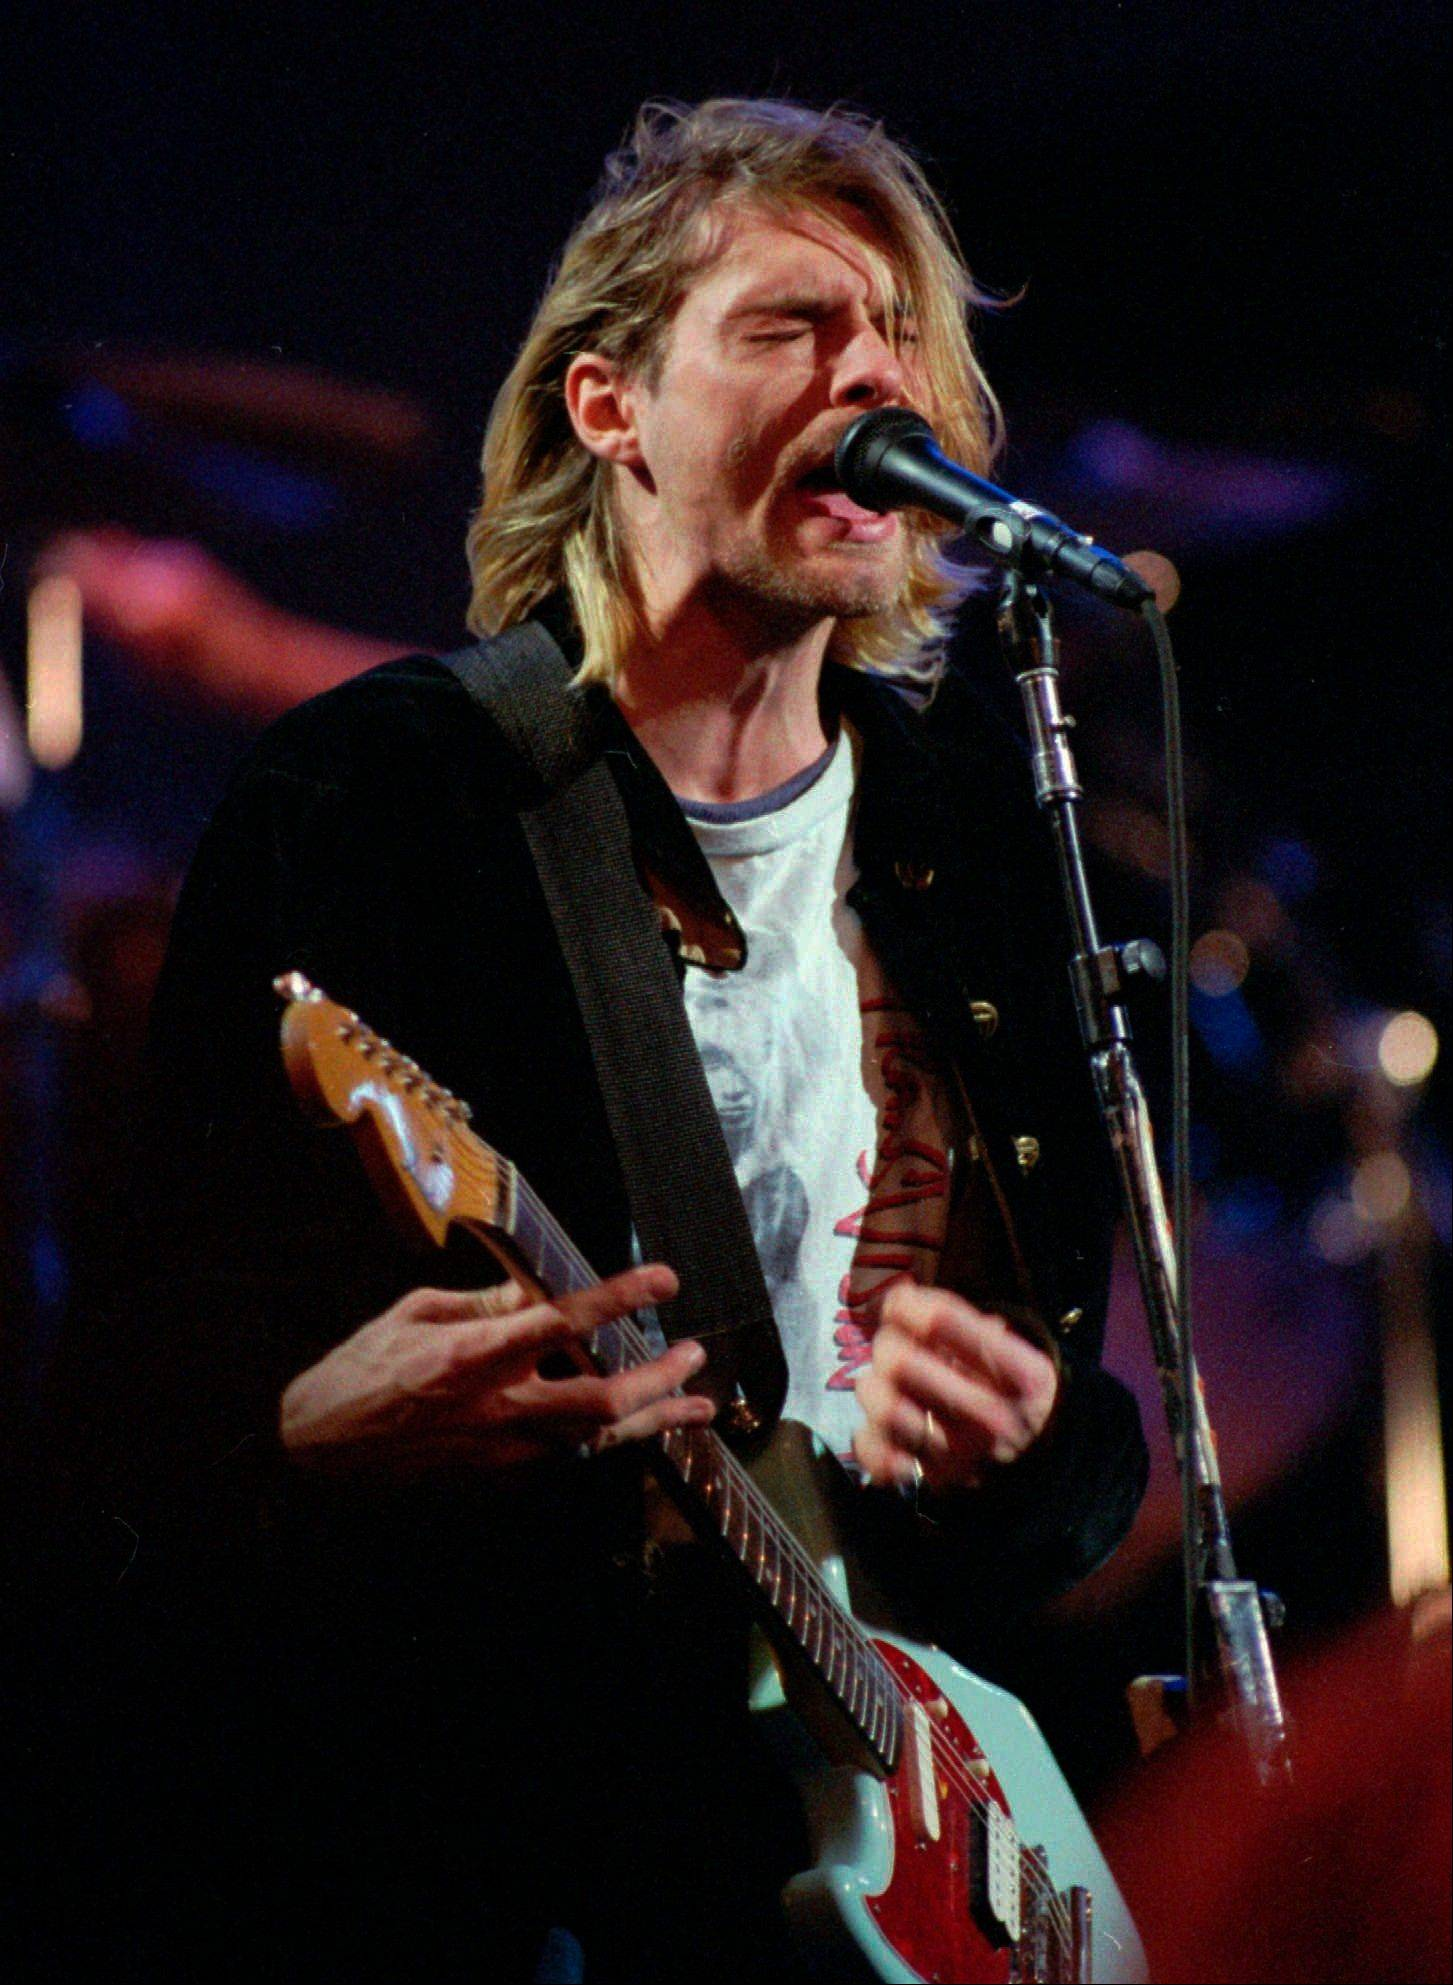 Kurt Cobain, lead singer for the Seattle-based band Nirvana, performing during the taping of MTV's Live and Loud Production in Seattle in 1993. Nirvana is among first-time nominees to the Rock and Roll Hall of Fame. The hall of fame announced its annual list of nominees Wednesday.